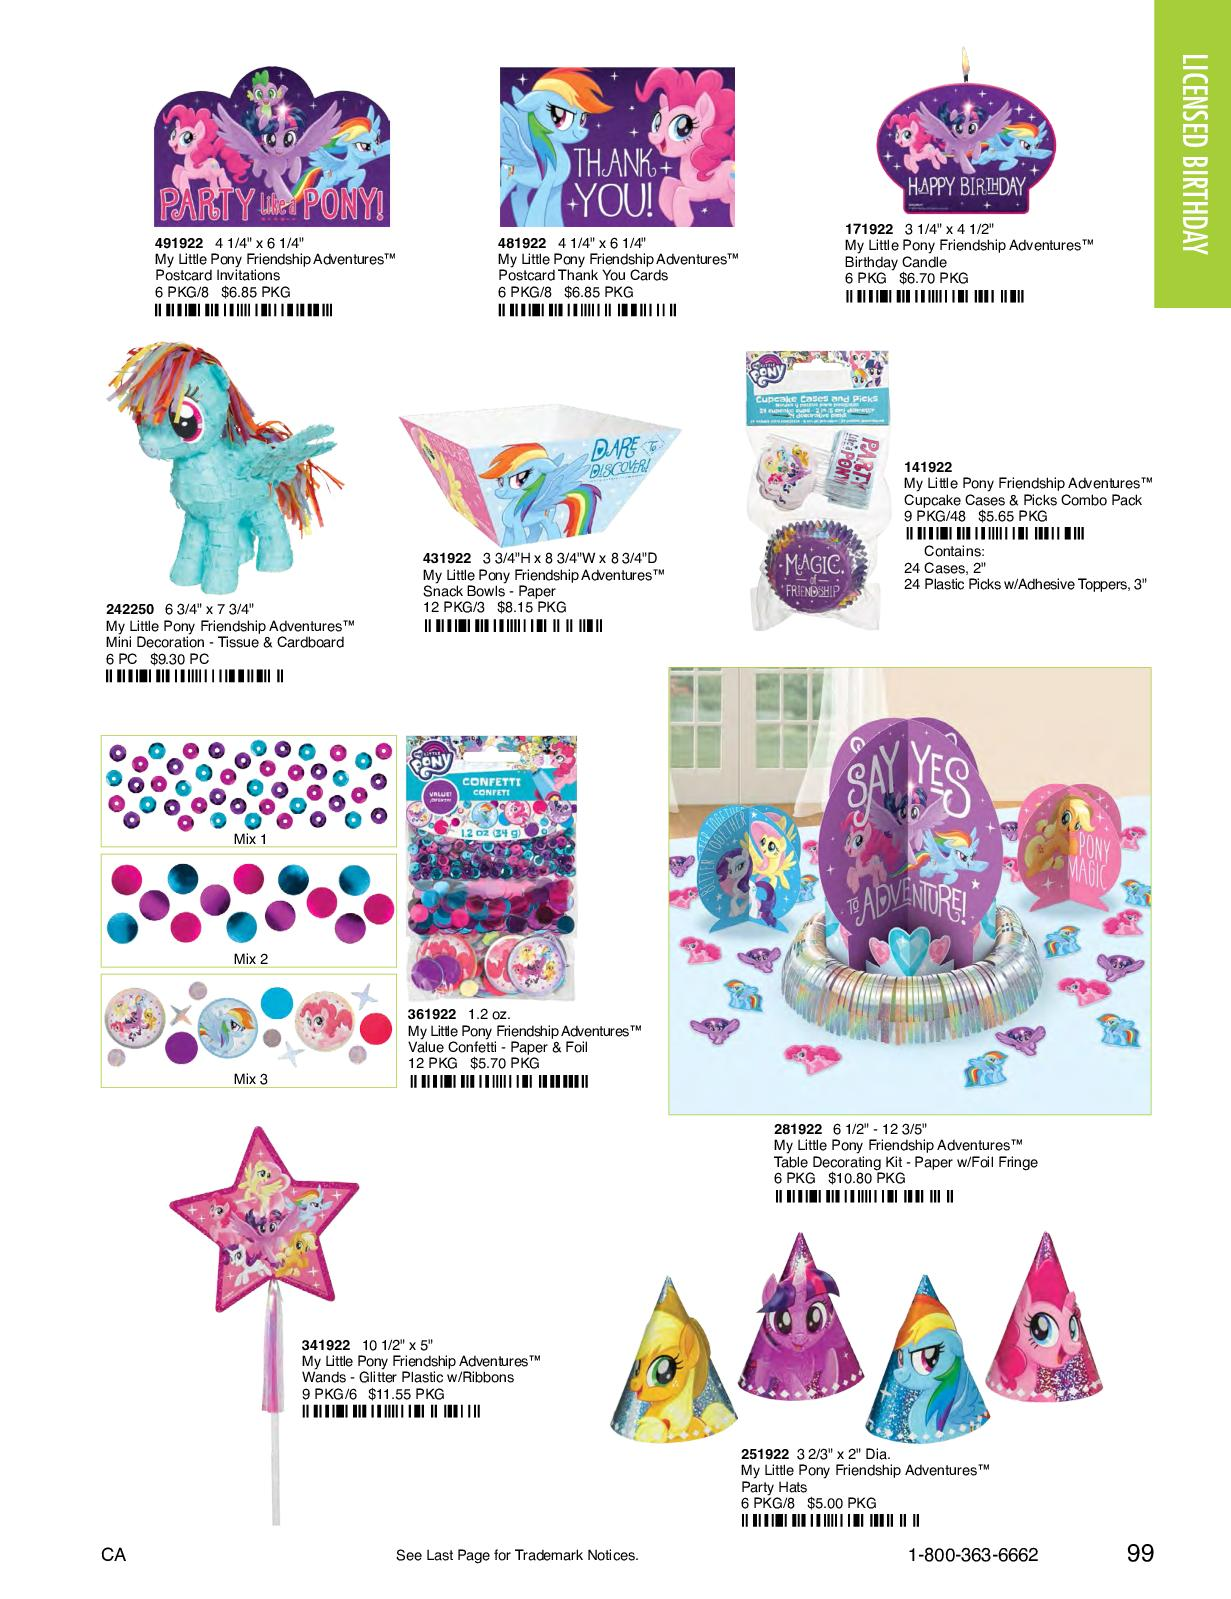 My Little Pony Friendship Adventures/™ Body Jewelry Favors Amscan